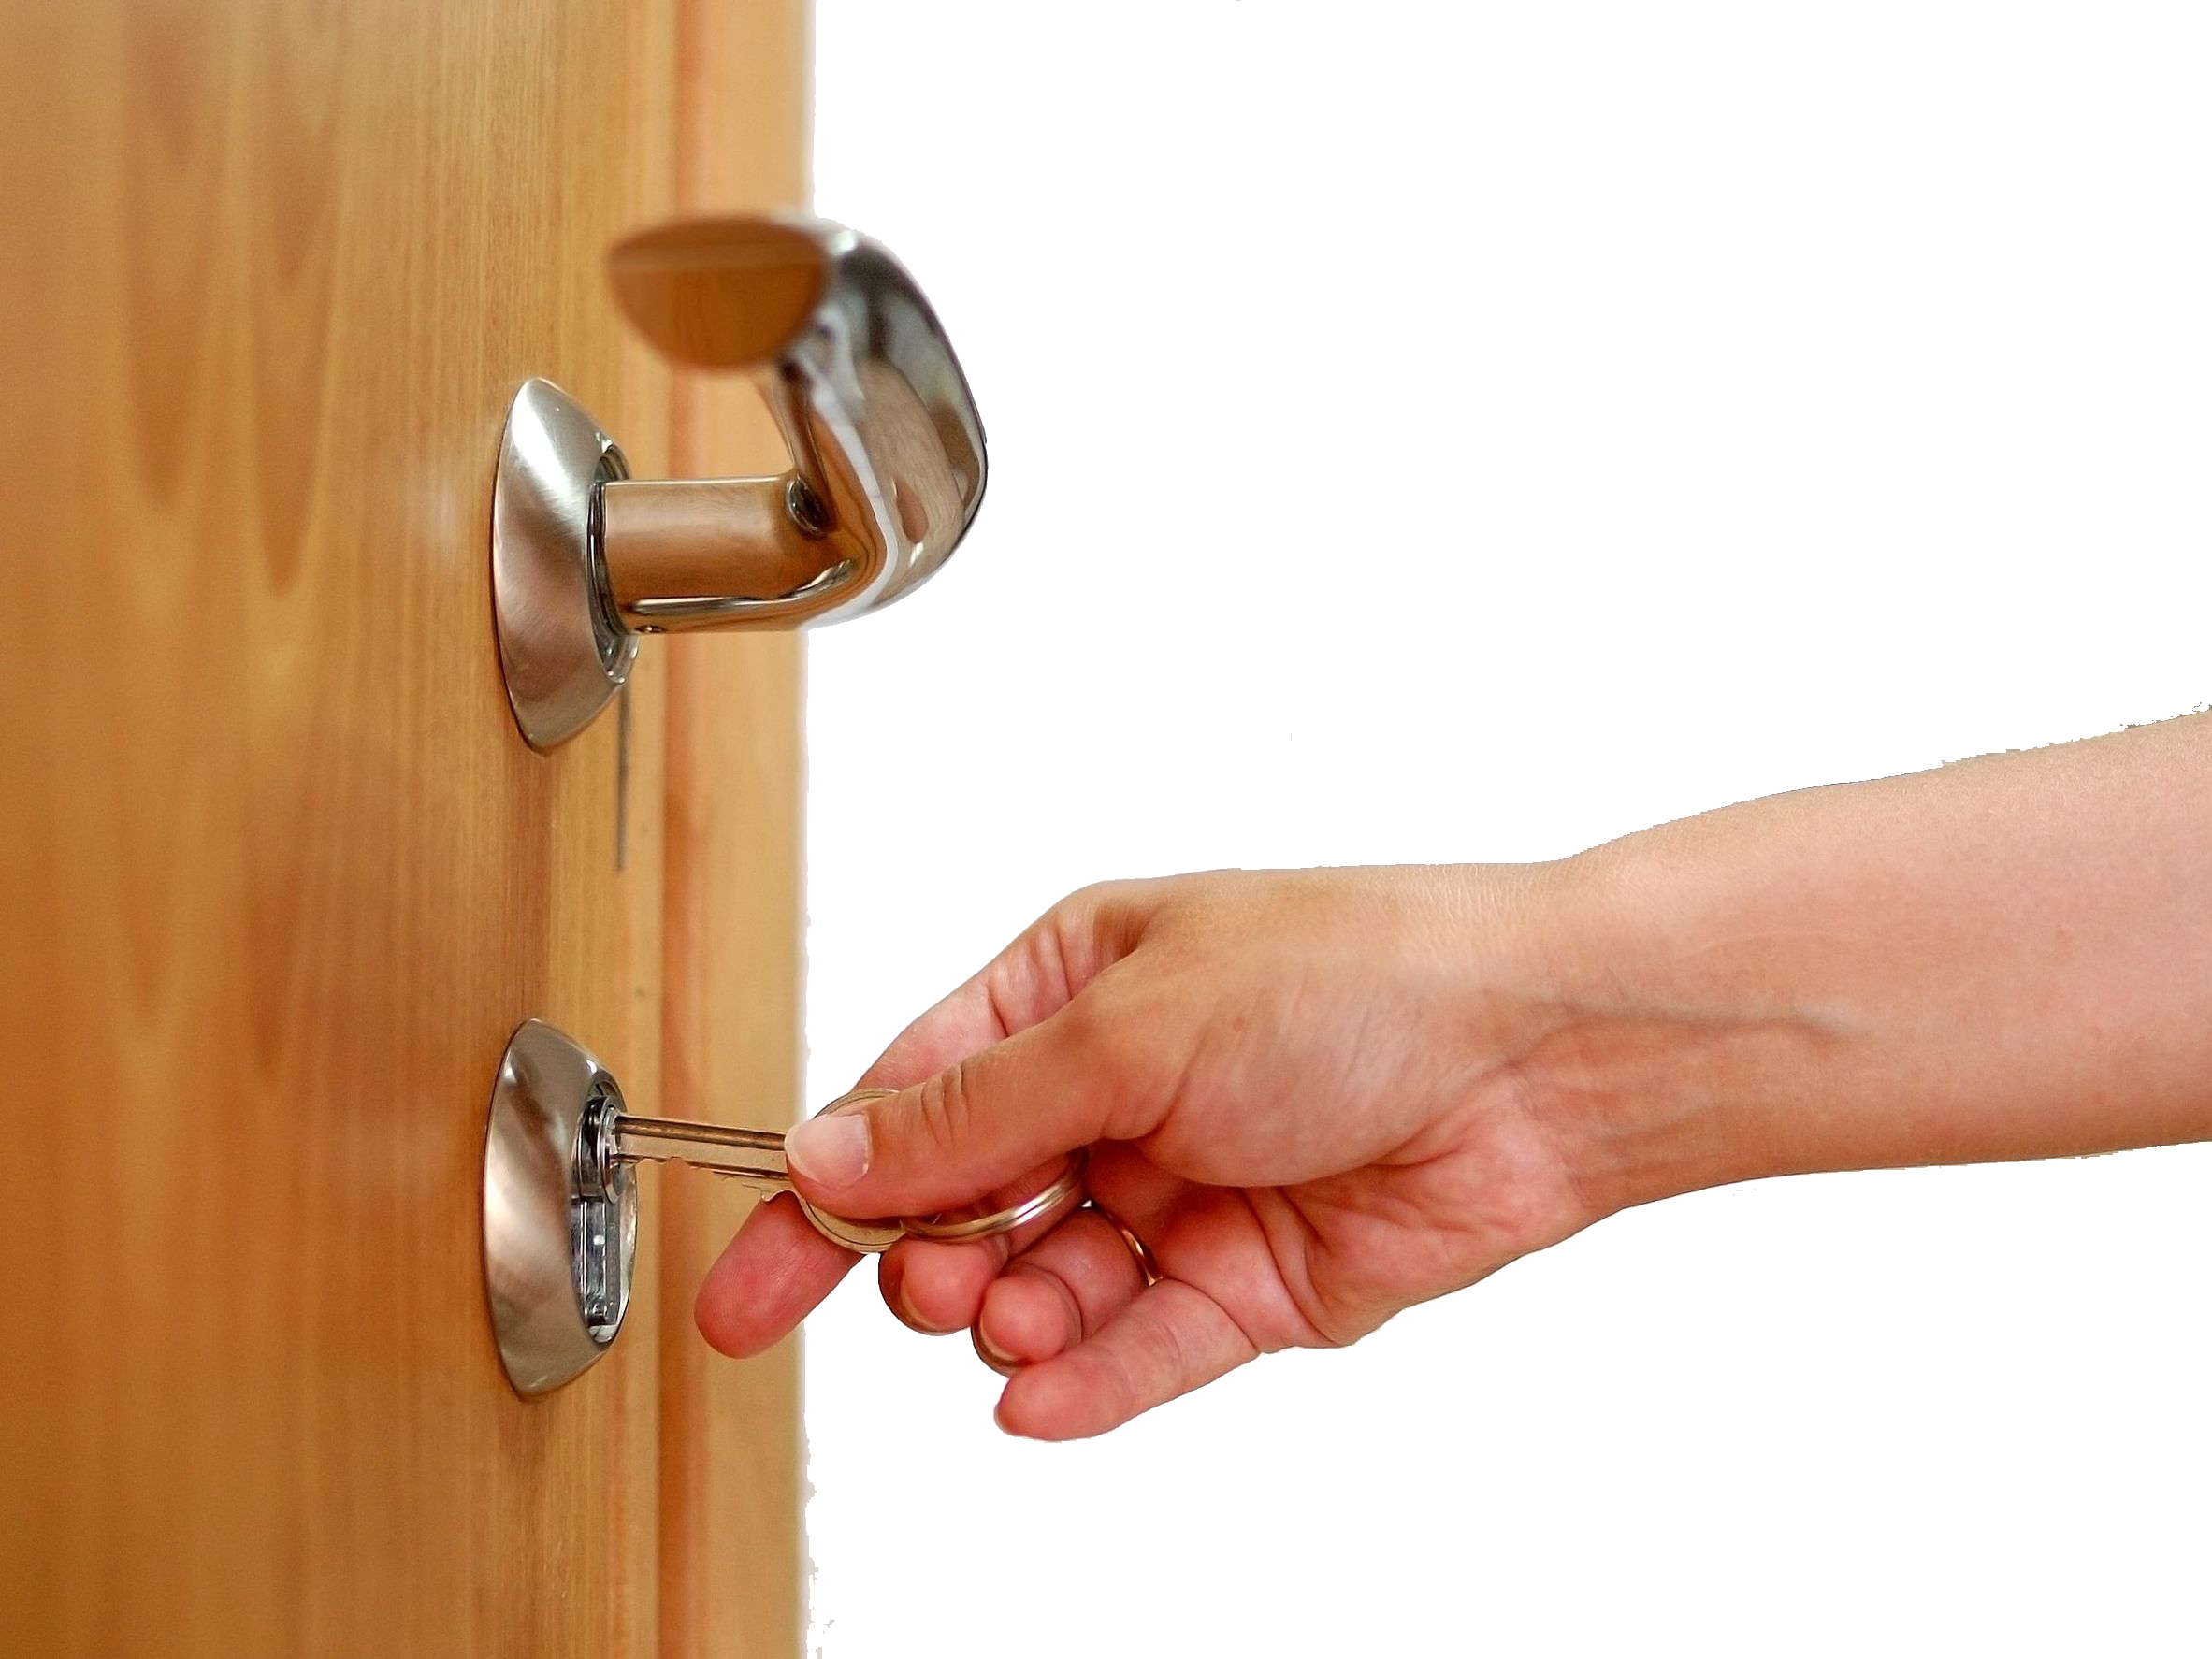 Reasons-to-avail-door-lock-security-for-home